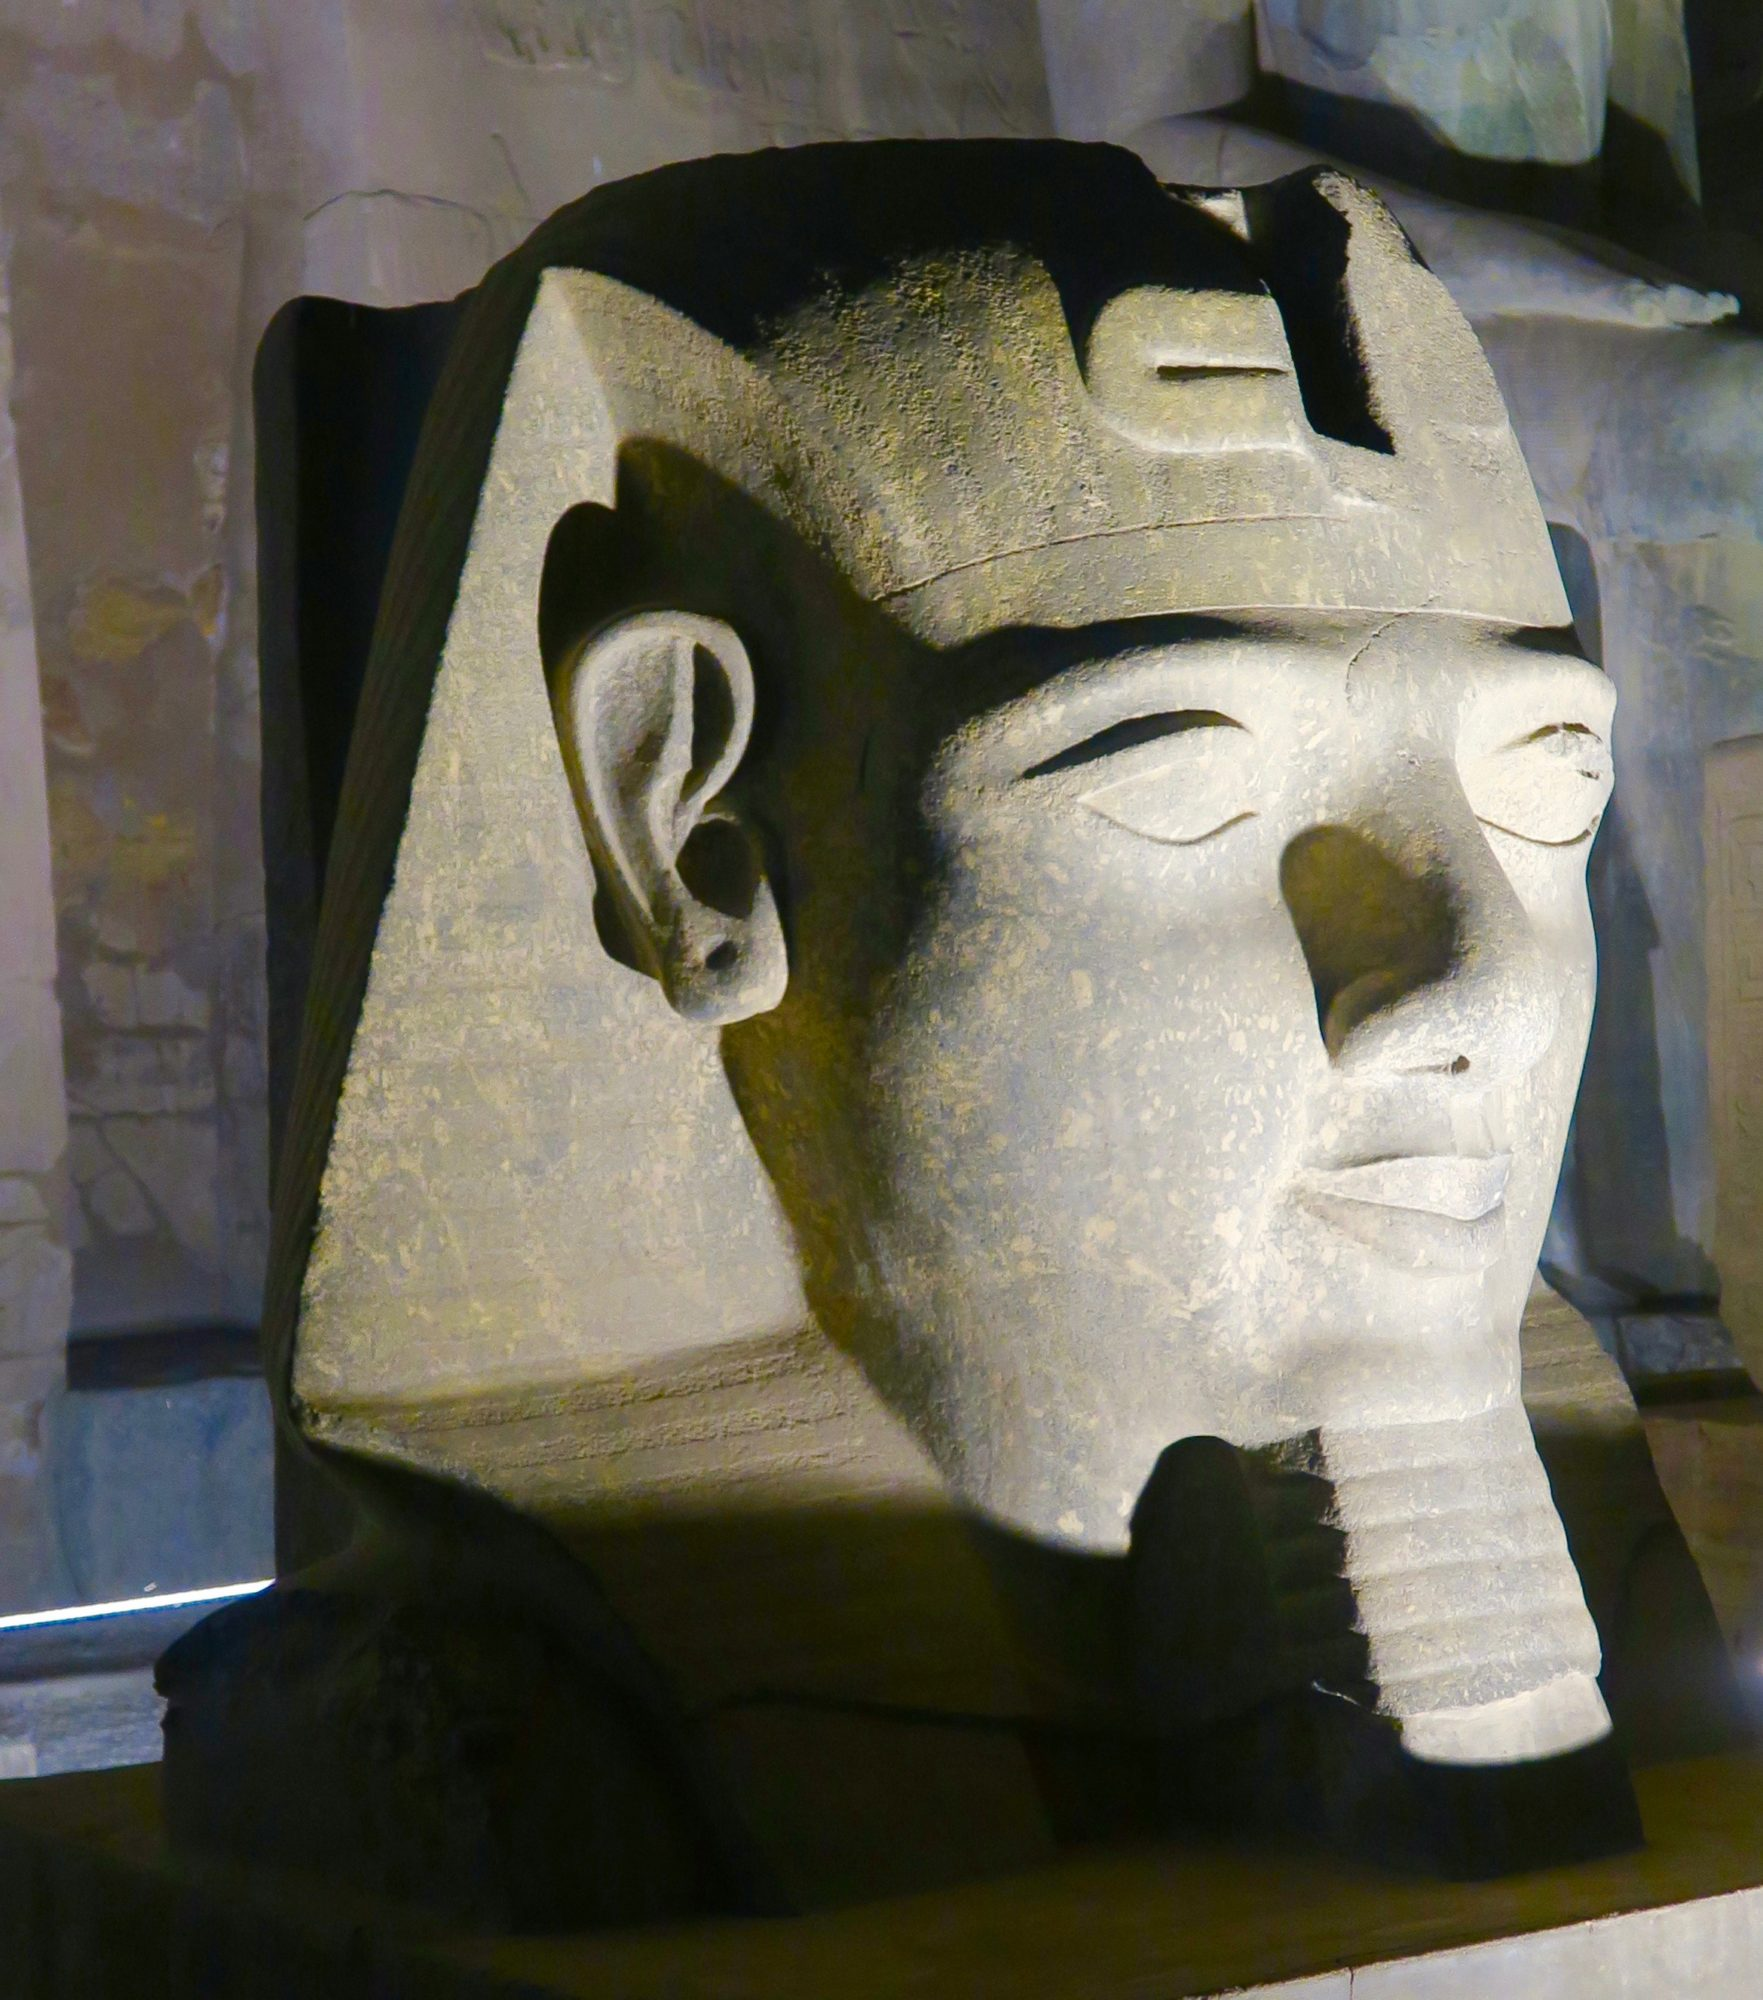 Head of Ramses II, Luxor